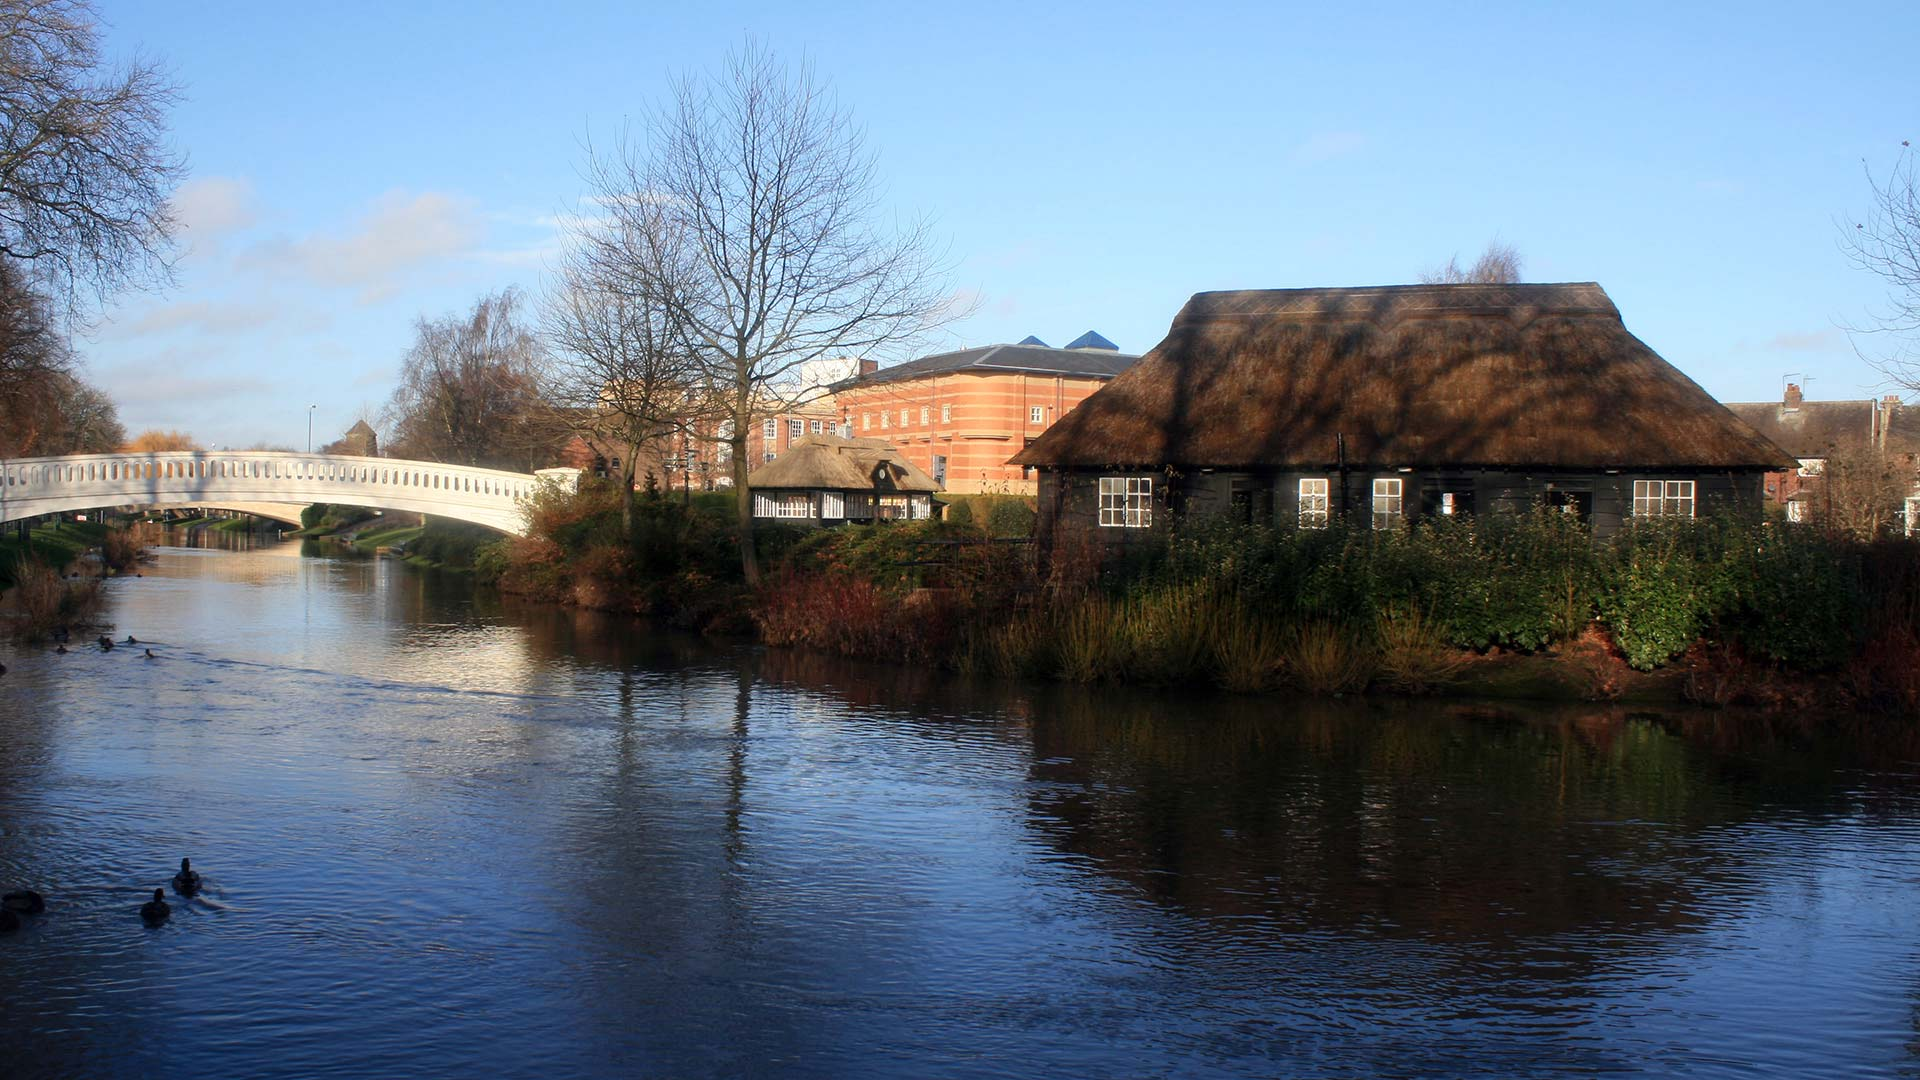 Panorama to illustrate dating in stafford